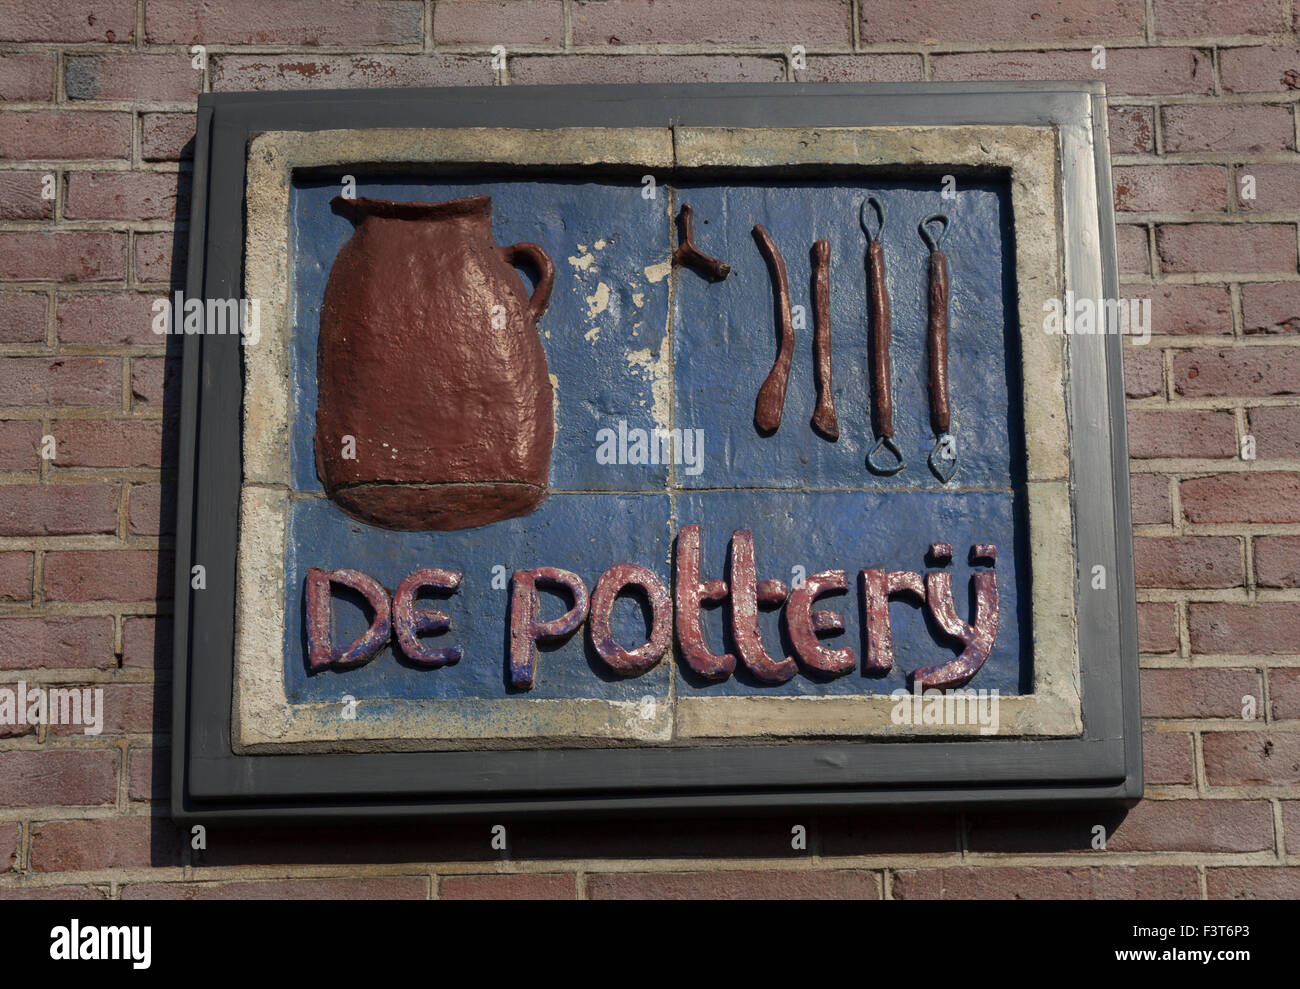 De Pottery plaque on the front wall of 136 Prinsengracht, Amsterdam, The Netherlands - Stock Image